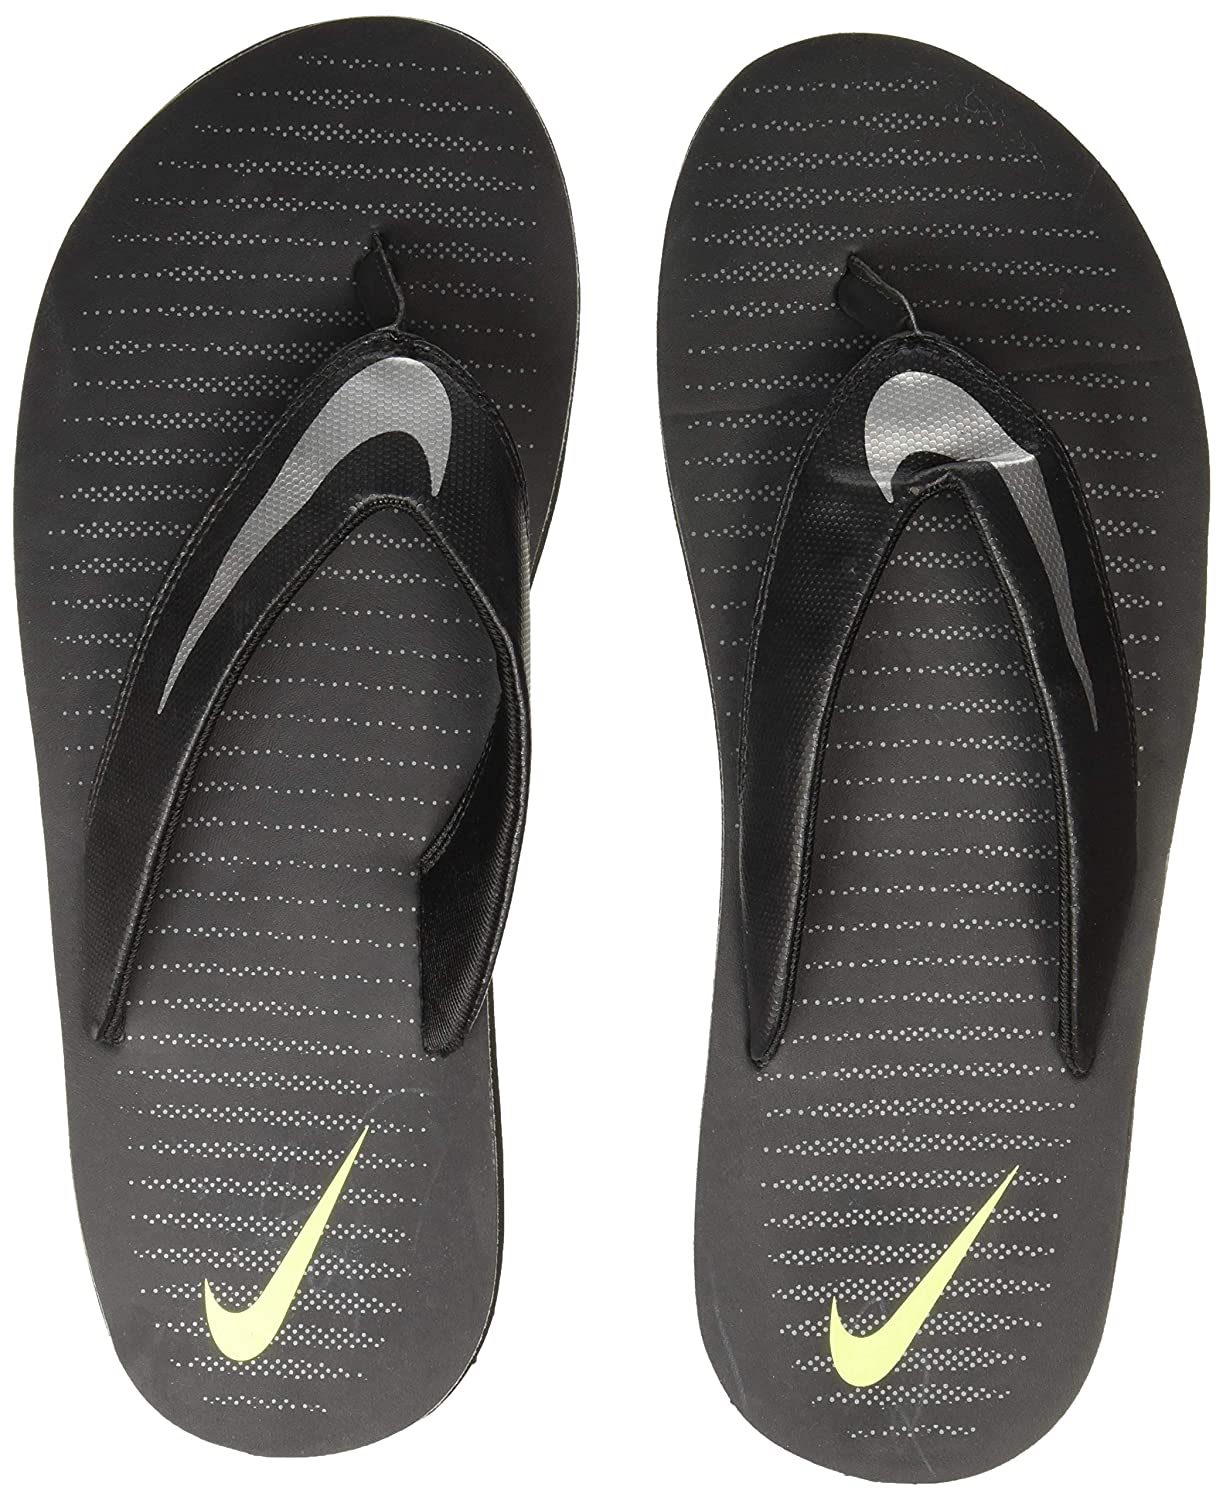 incredible prices top-rated discount best place for Nike Men's Chroma Thong 5 Flip Flops Thong Sandals